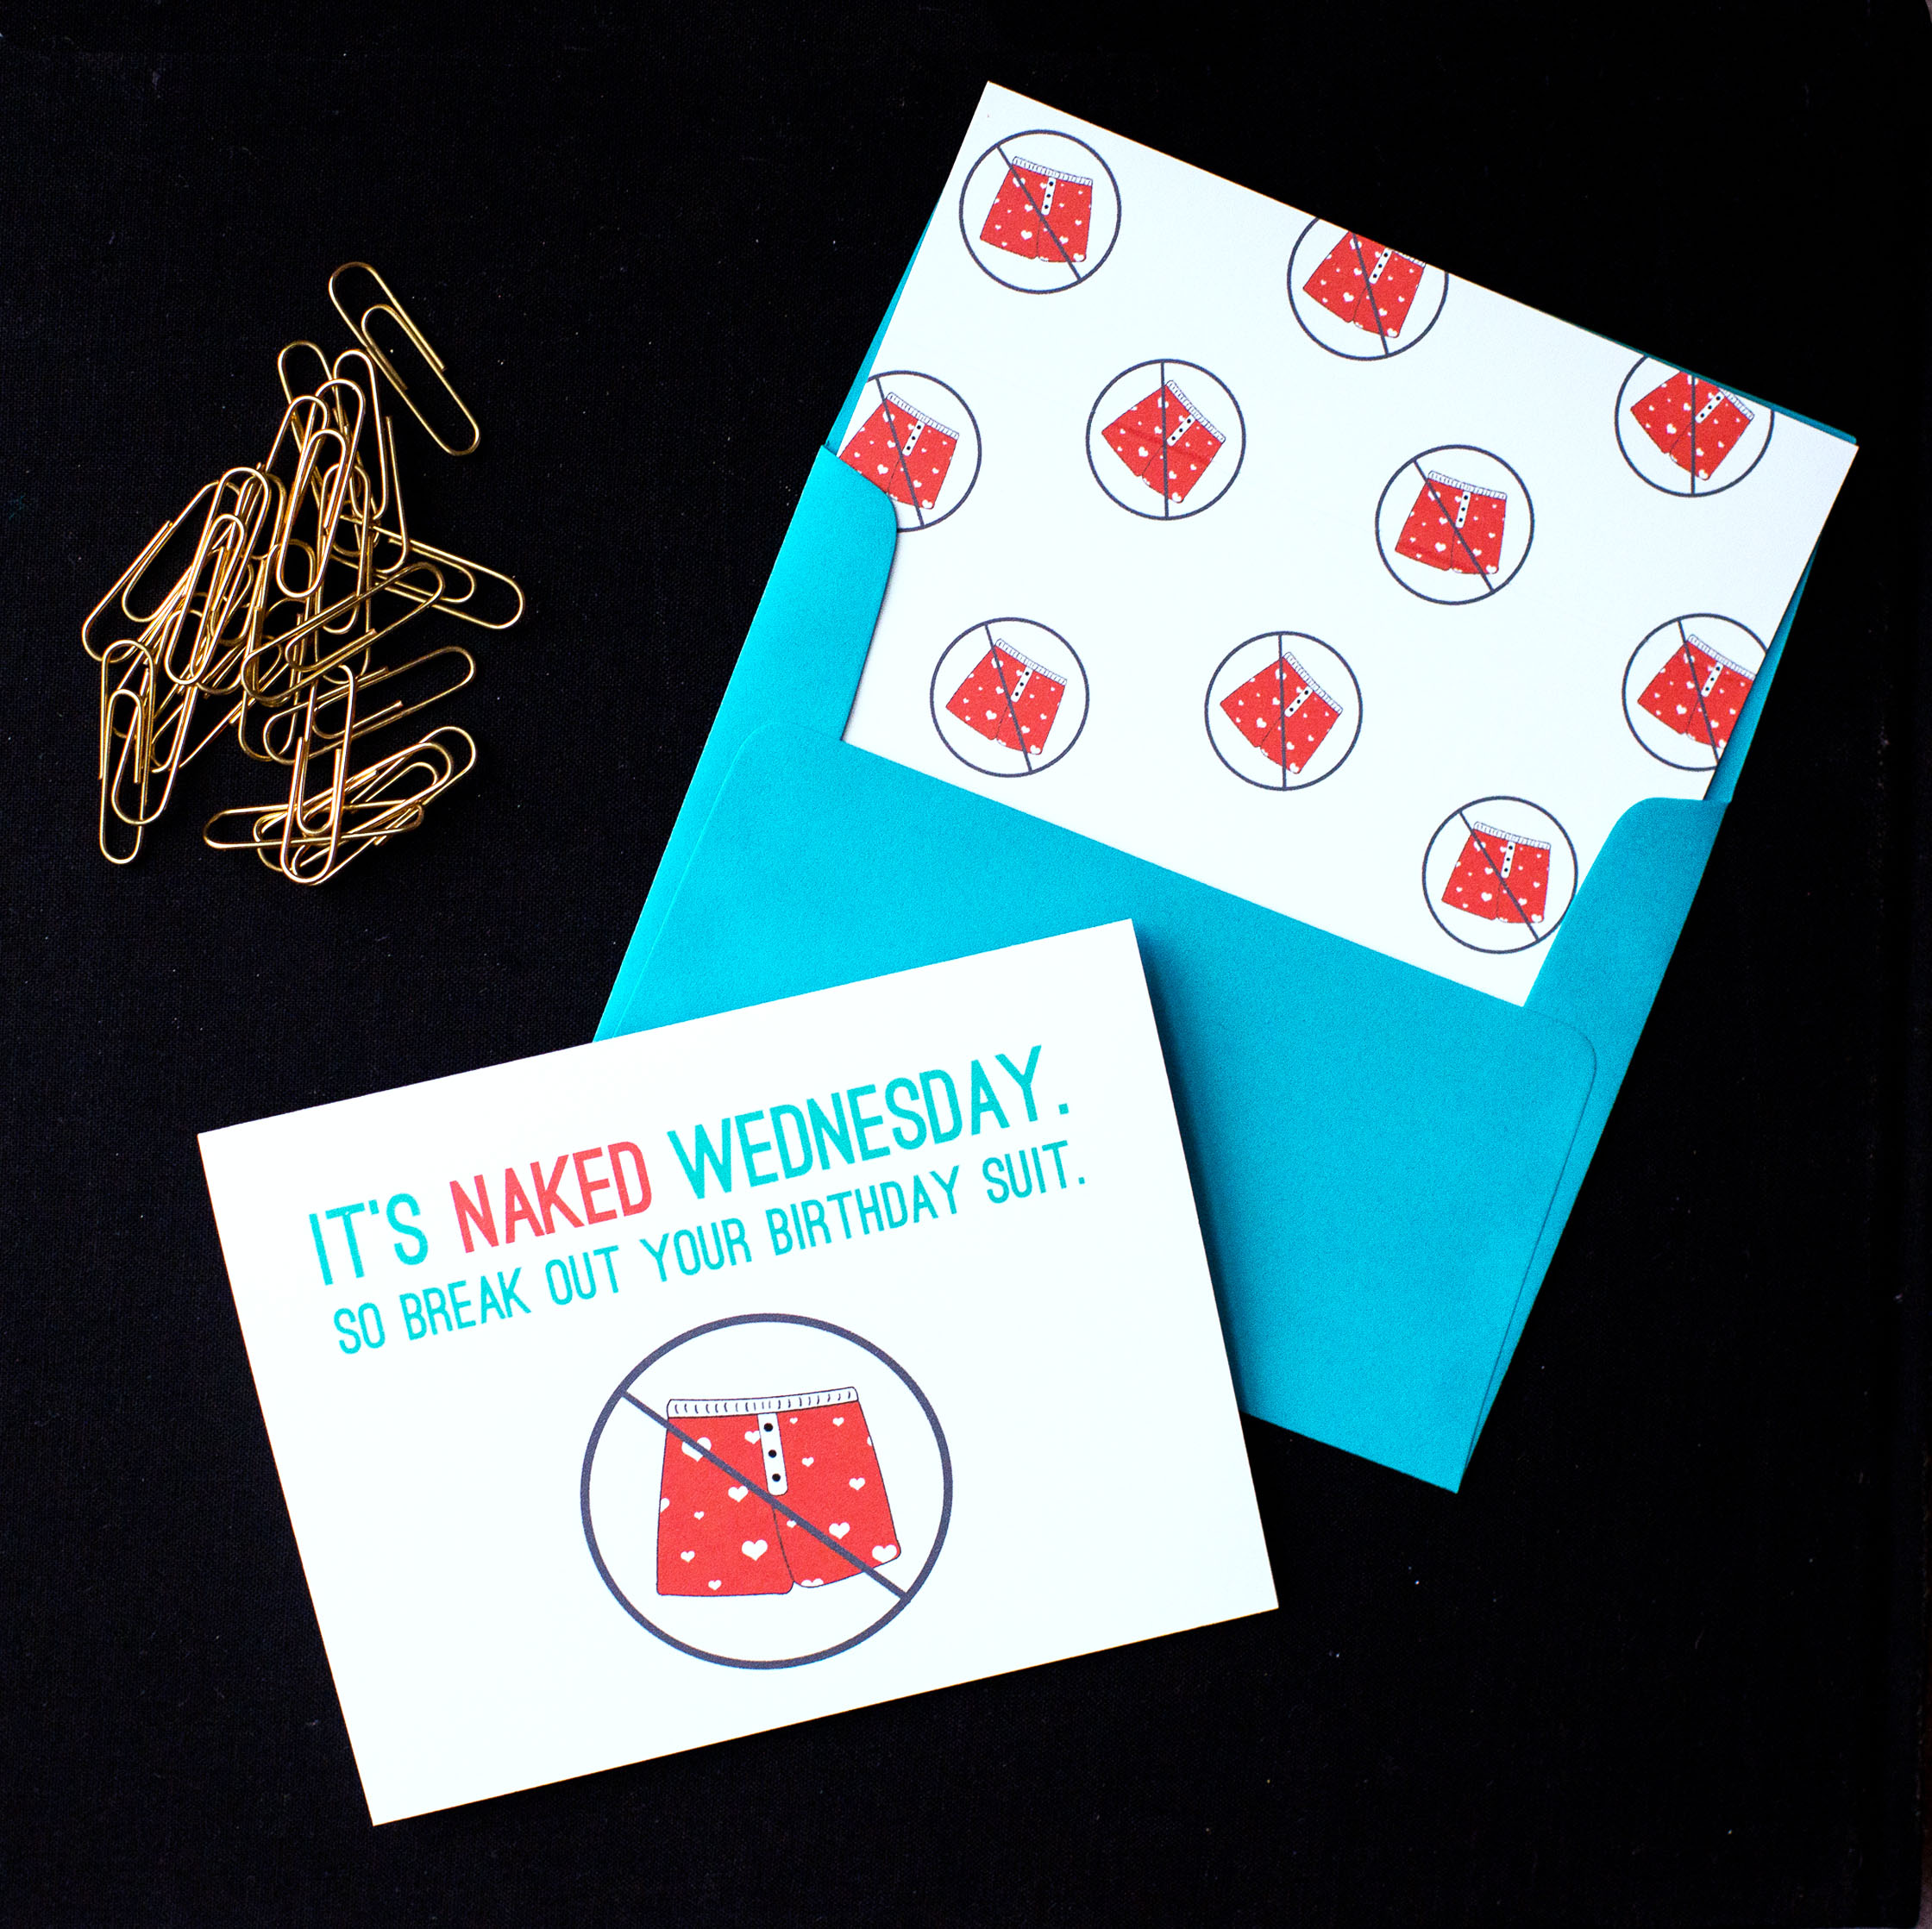 It's Naked Wednesday Card